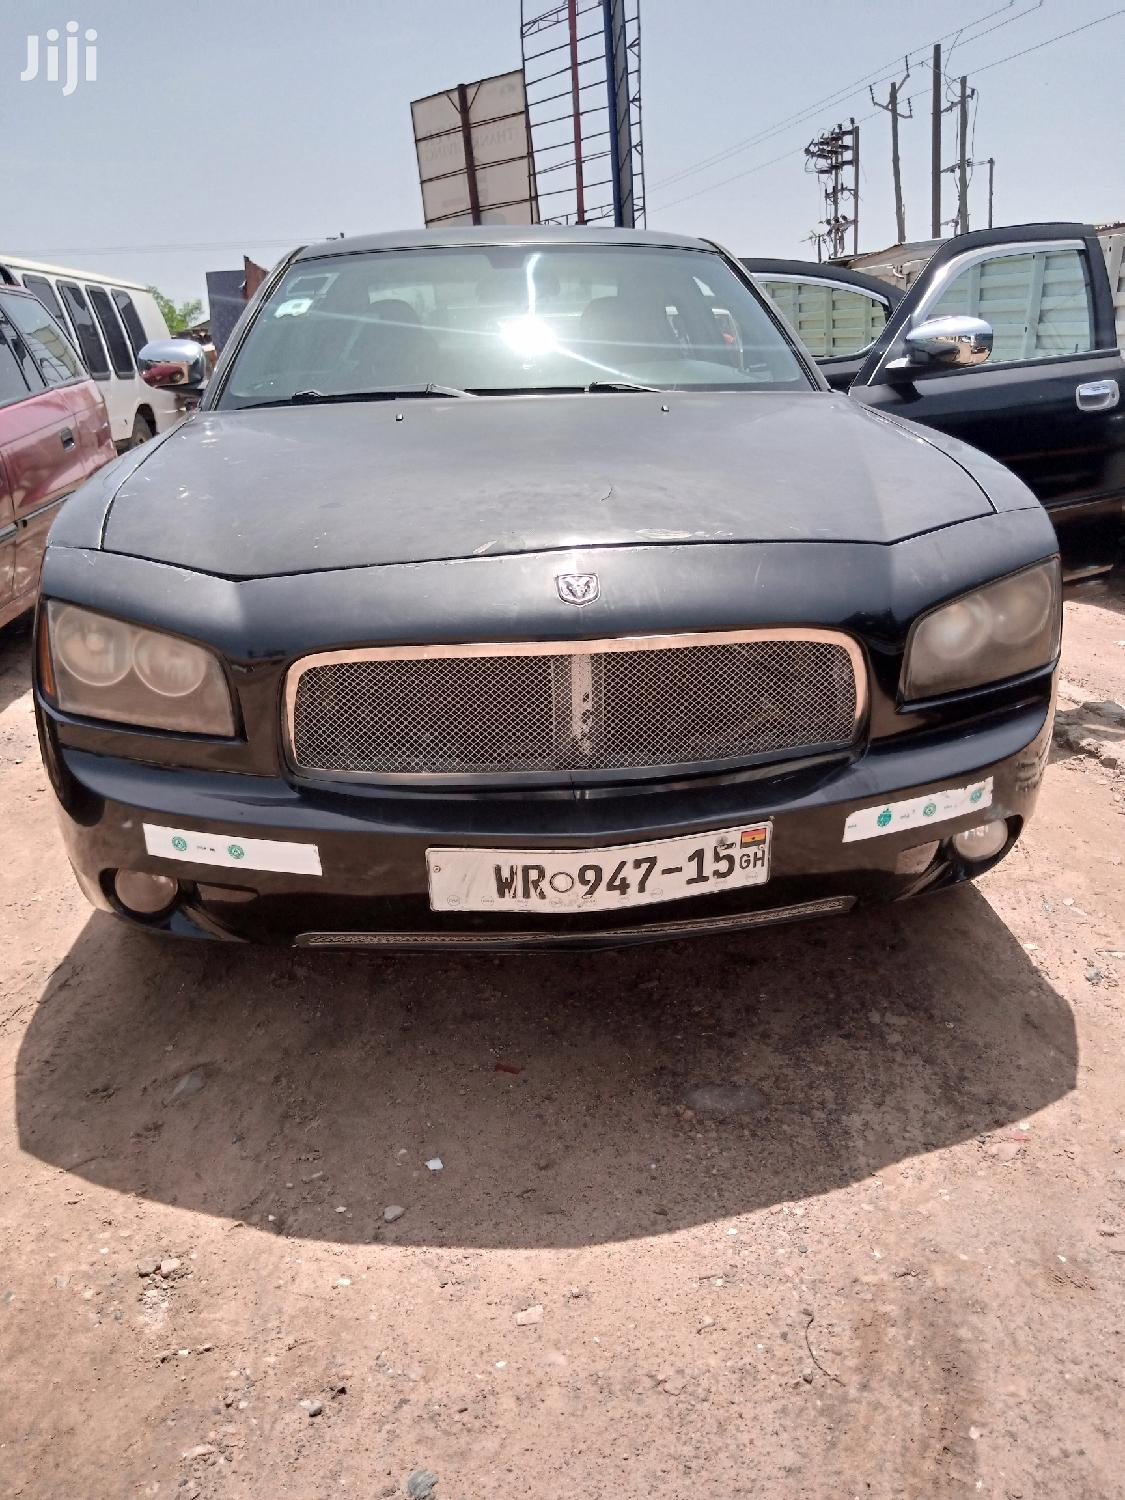 Chrysler Charger 2005 Black   Cars for sale in Ashaiman Municipal, Greater Accra, Ghana